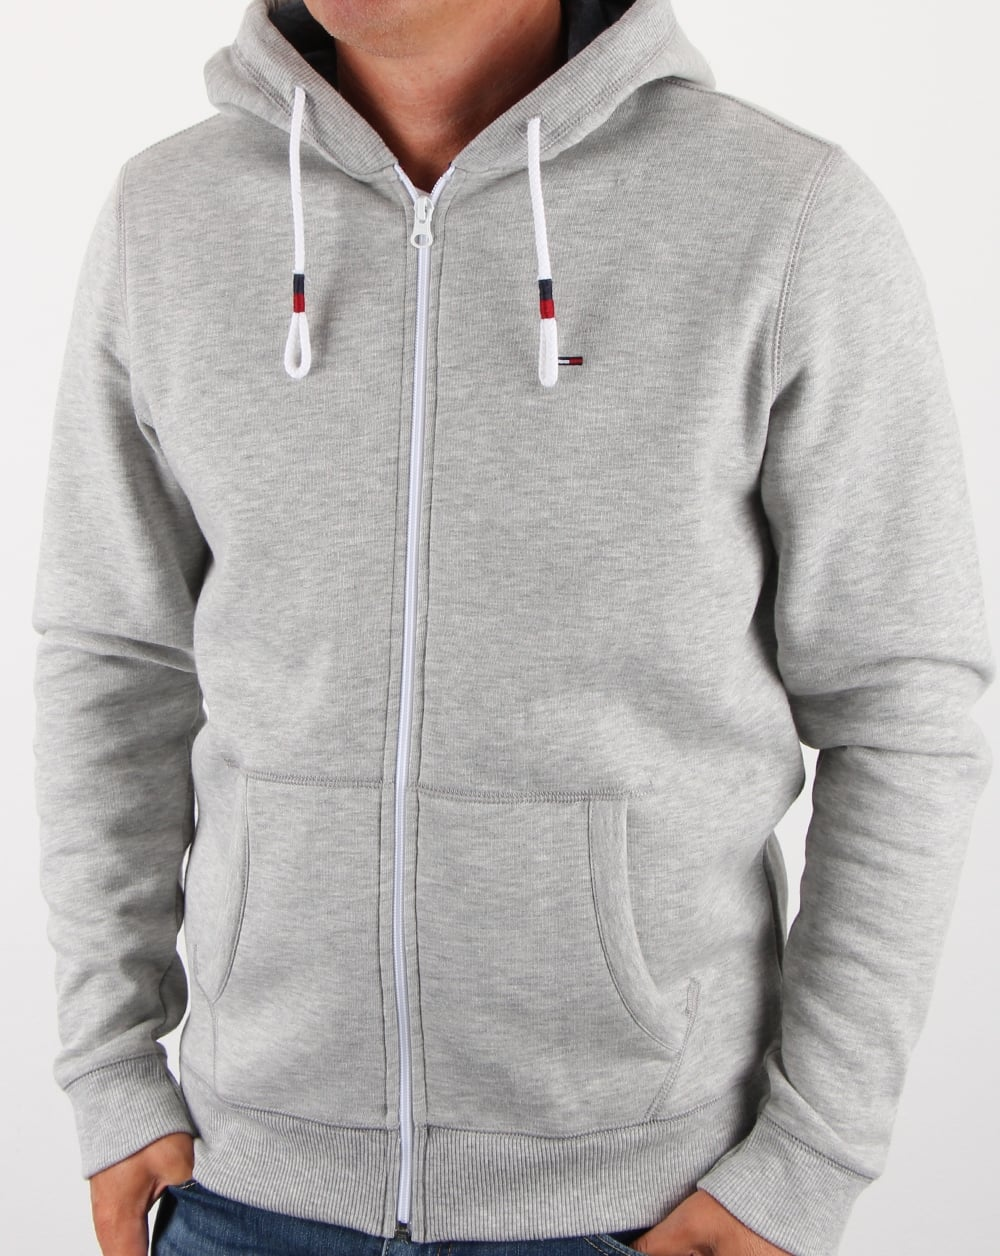 Details about Tommy Hilfiger Cotton Fleece Hoody in Light Grey Heather hoodie hooded sweat